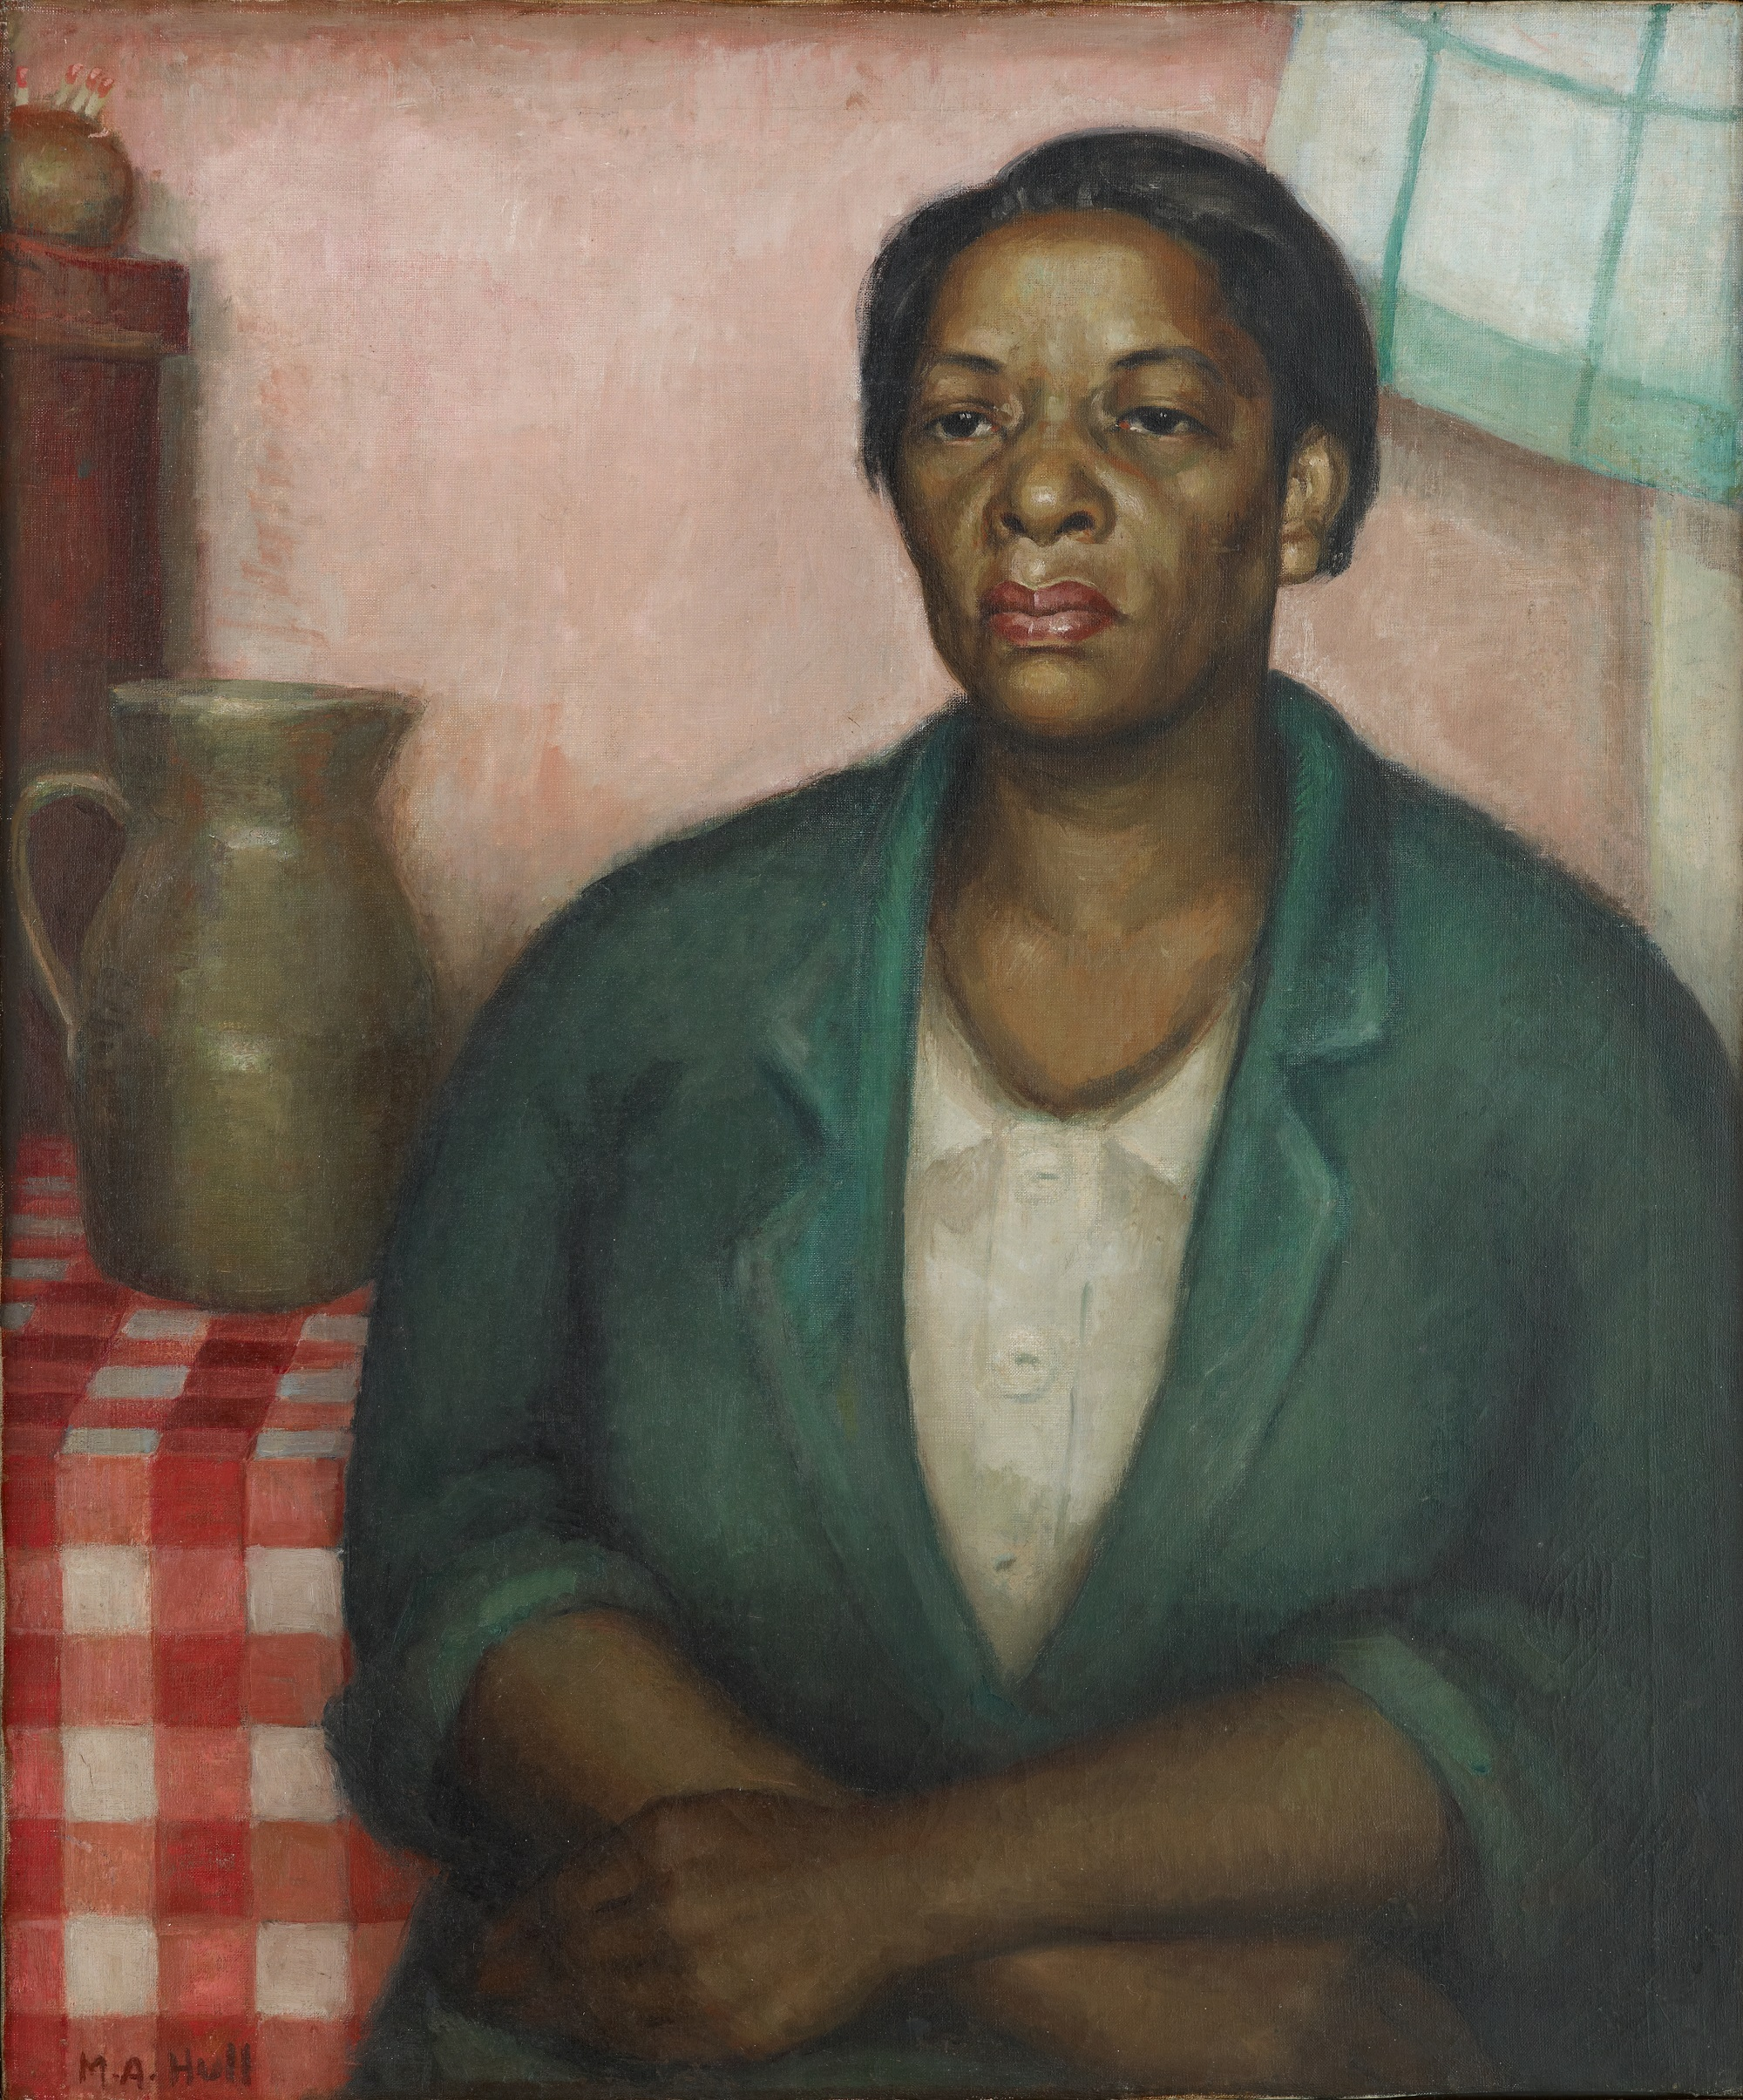 Marie Hull (1890-1980), Melissa, 1930. oil on canvas. Collection of Mississippi Museum of Art.